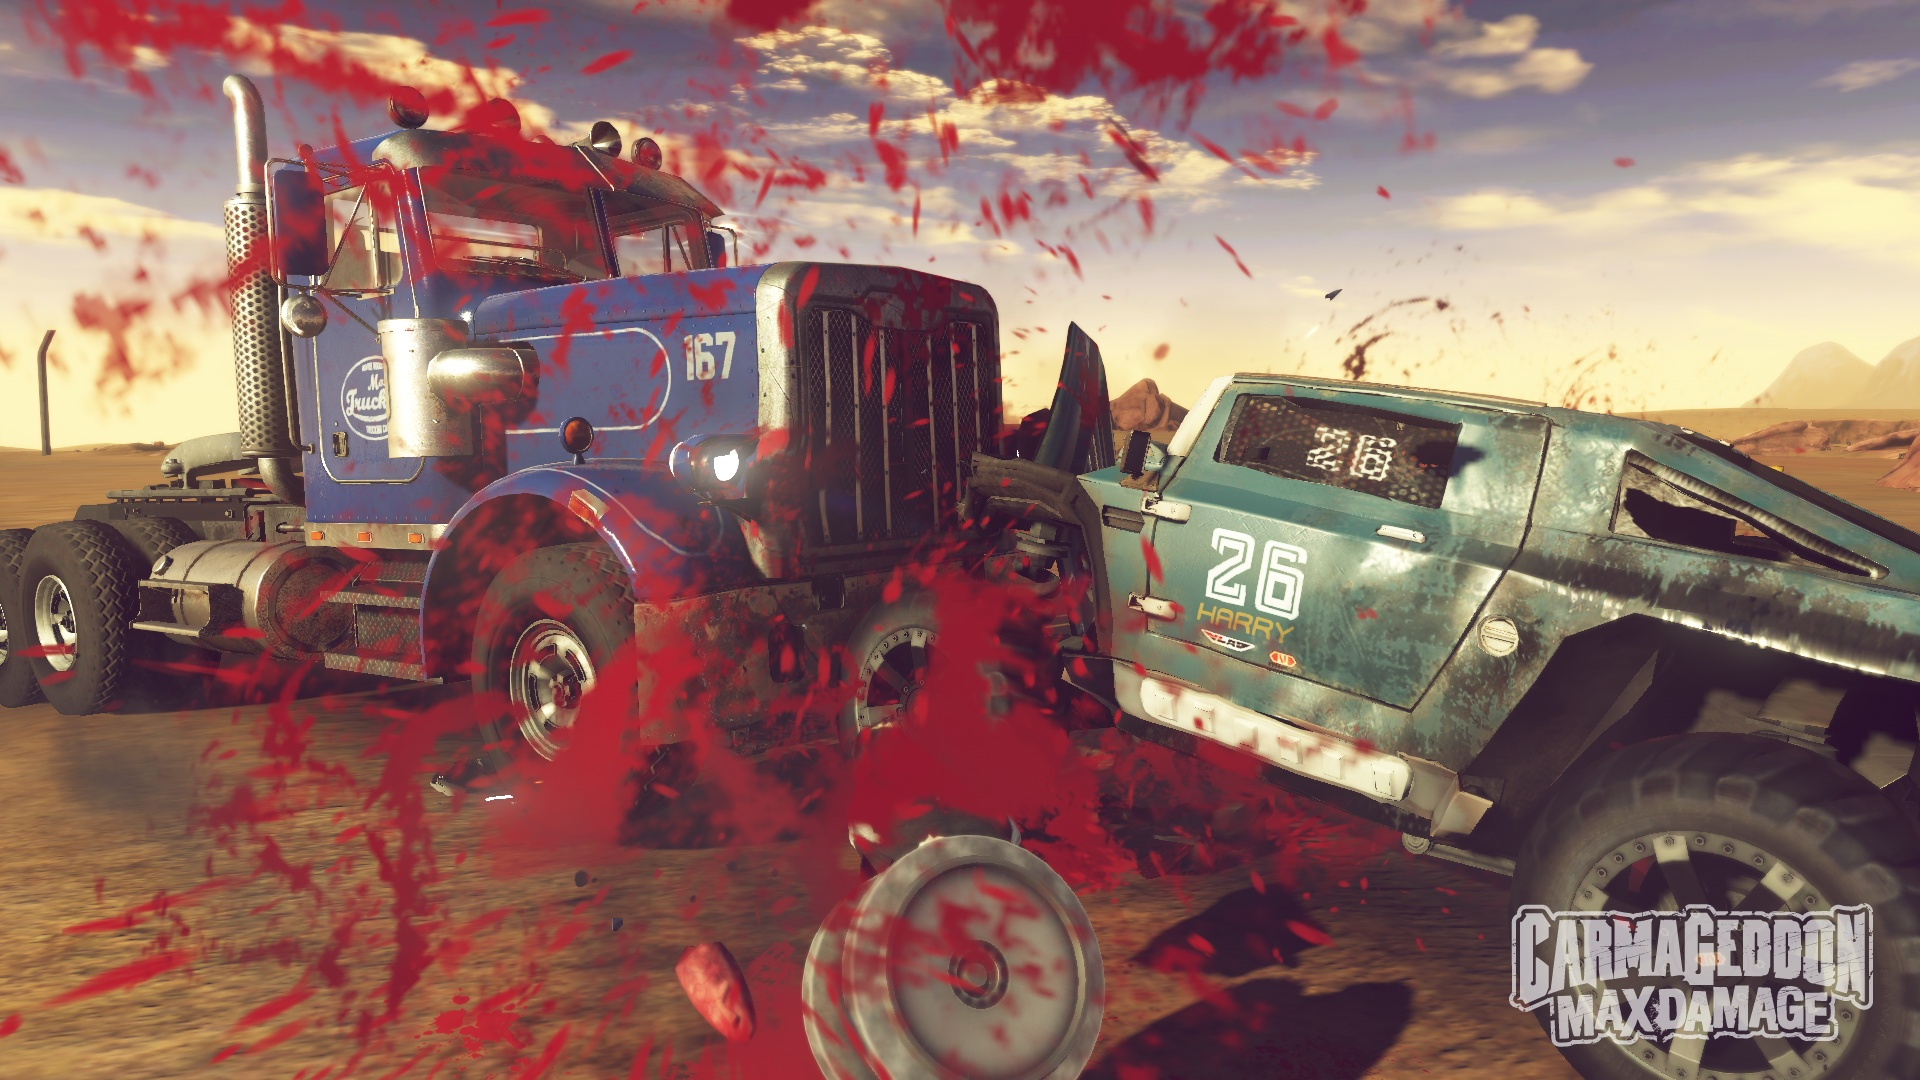 Carmageddon Max Damage screenshot pedestrian massacre